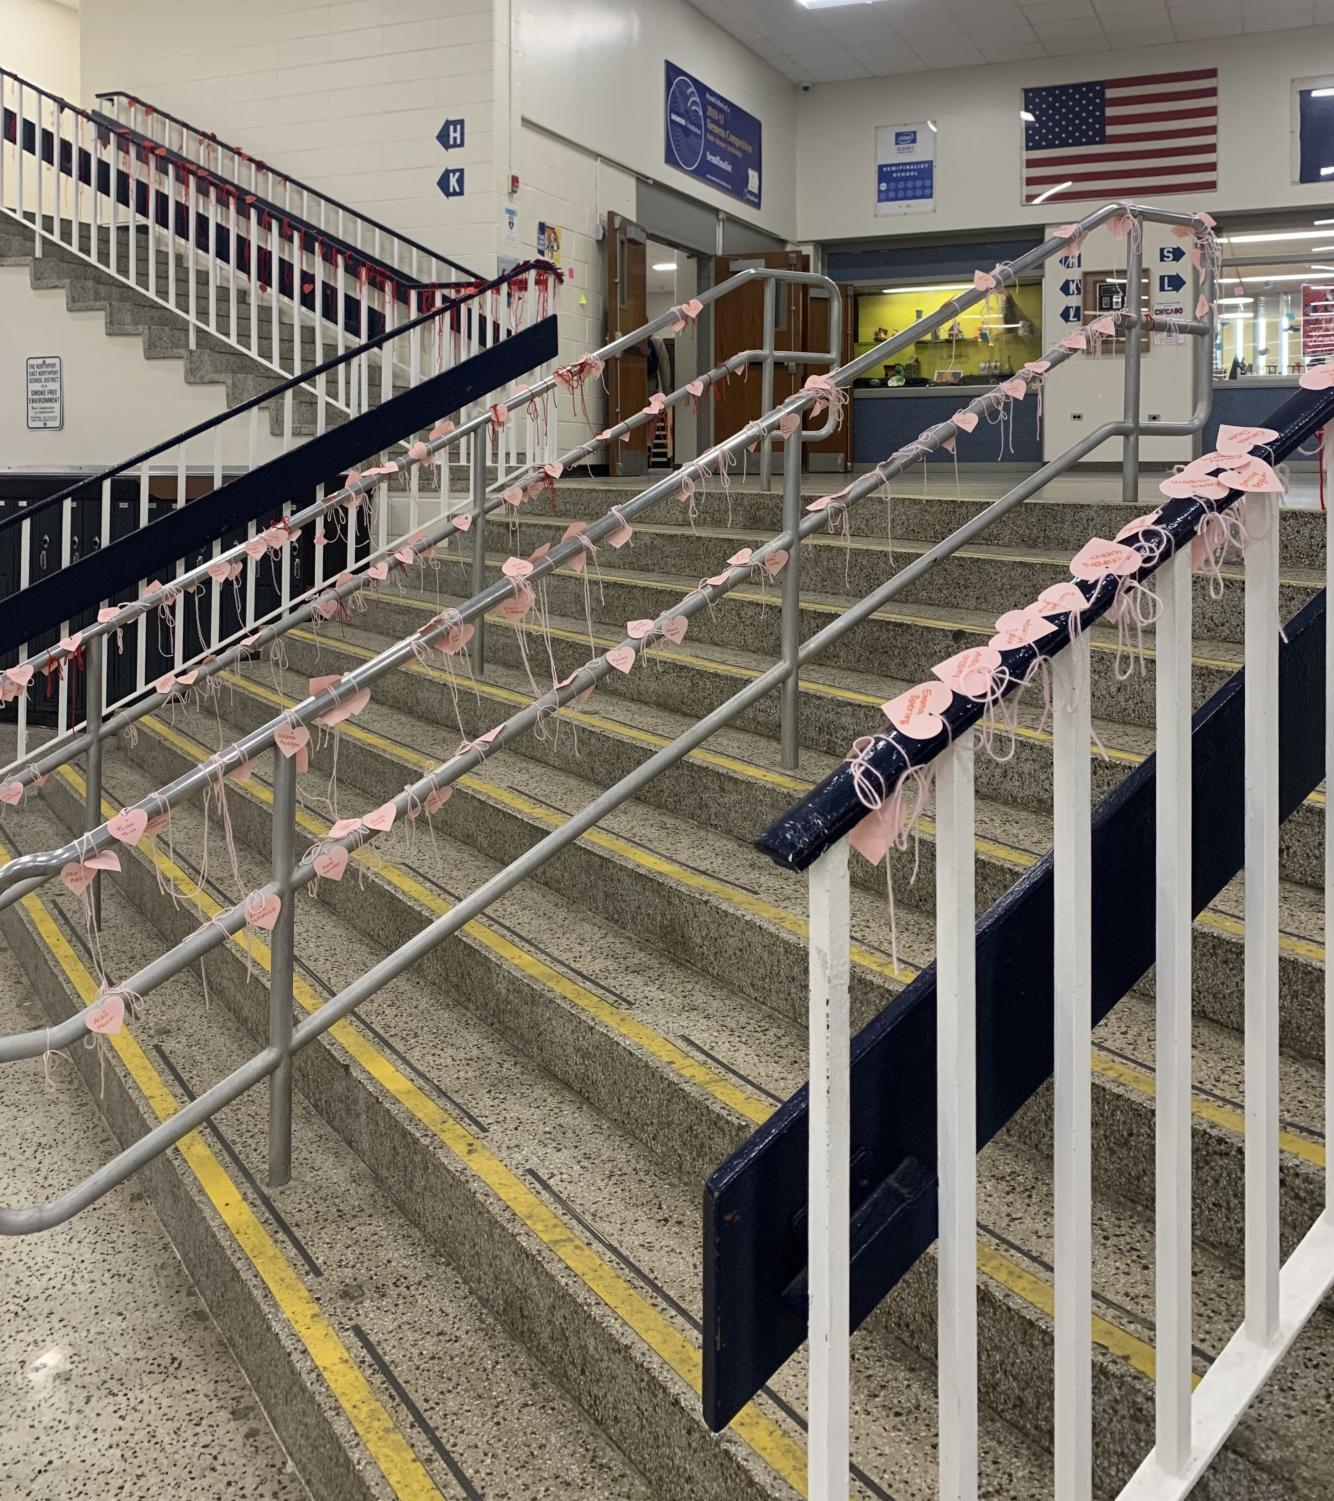 The main stairwell of the commons, adorned with paper hearts